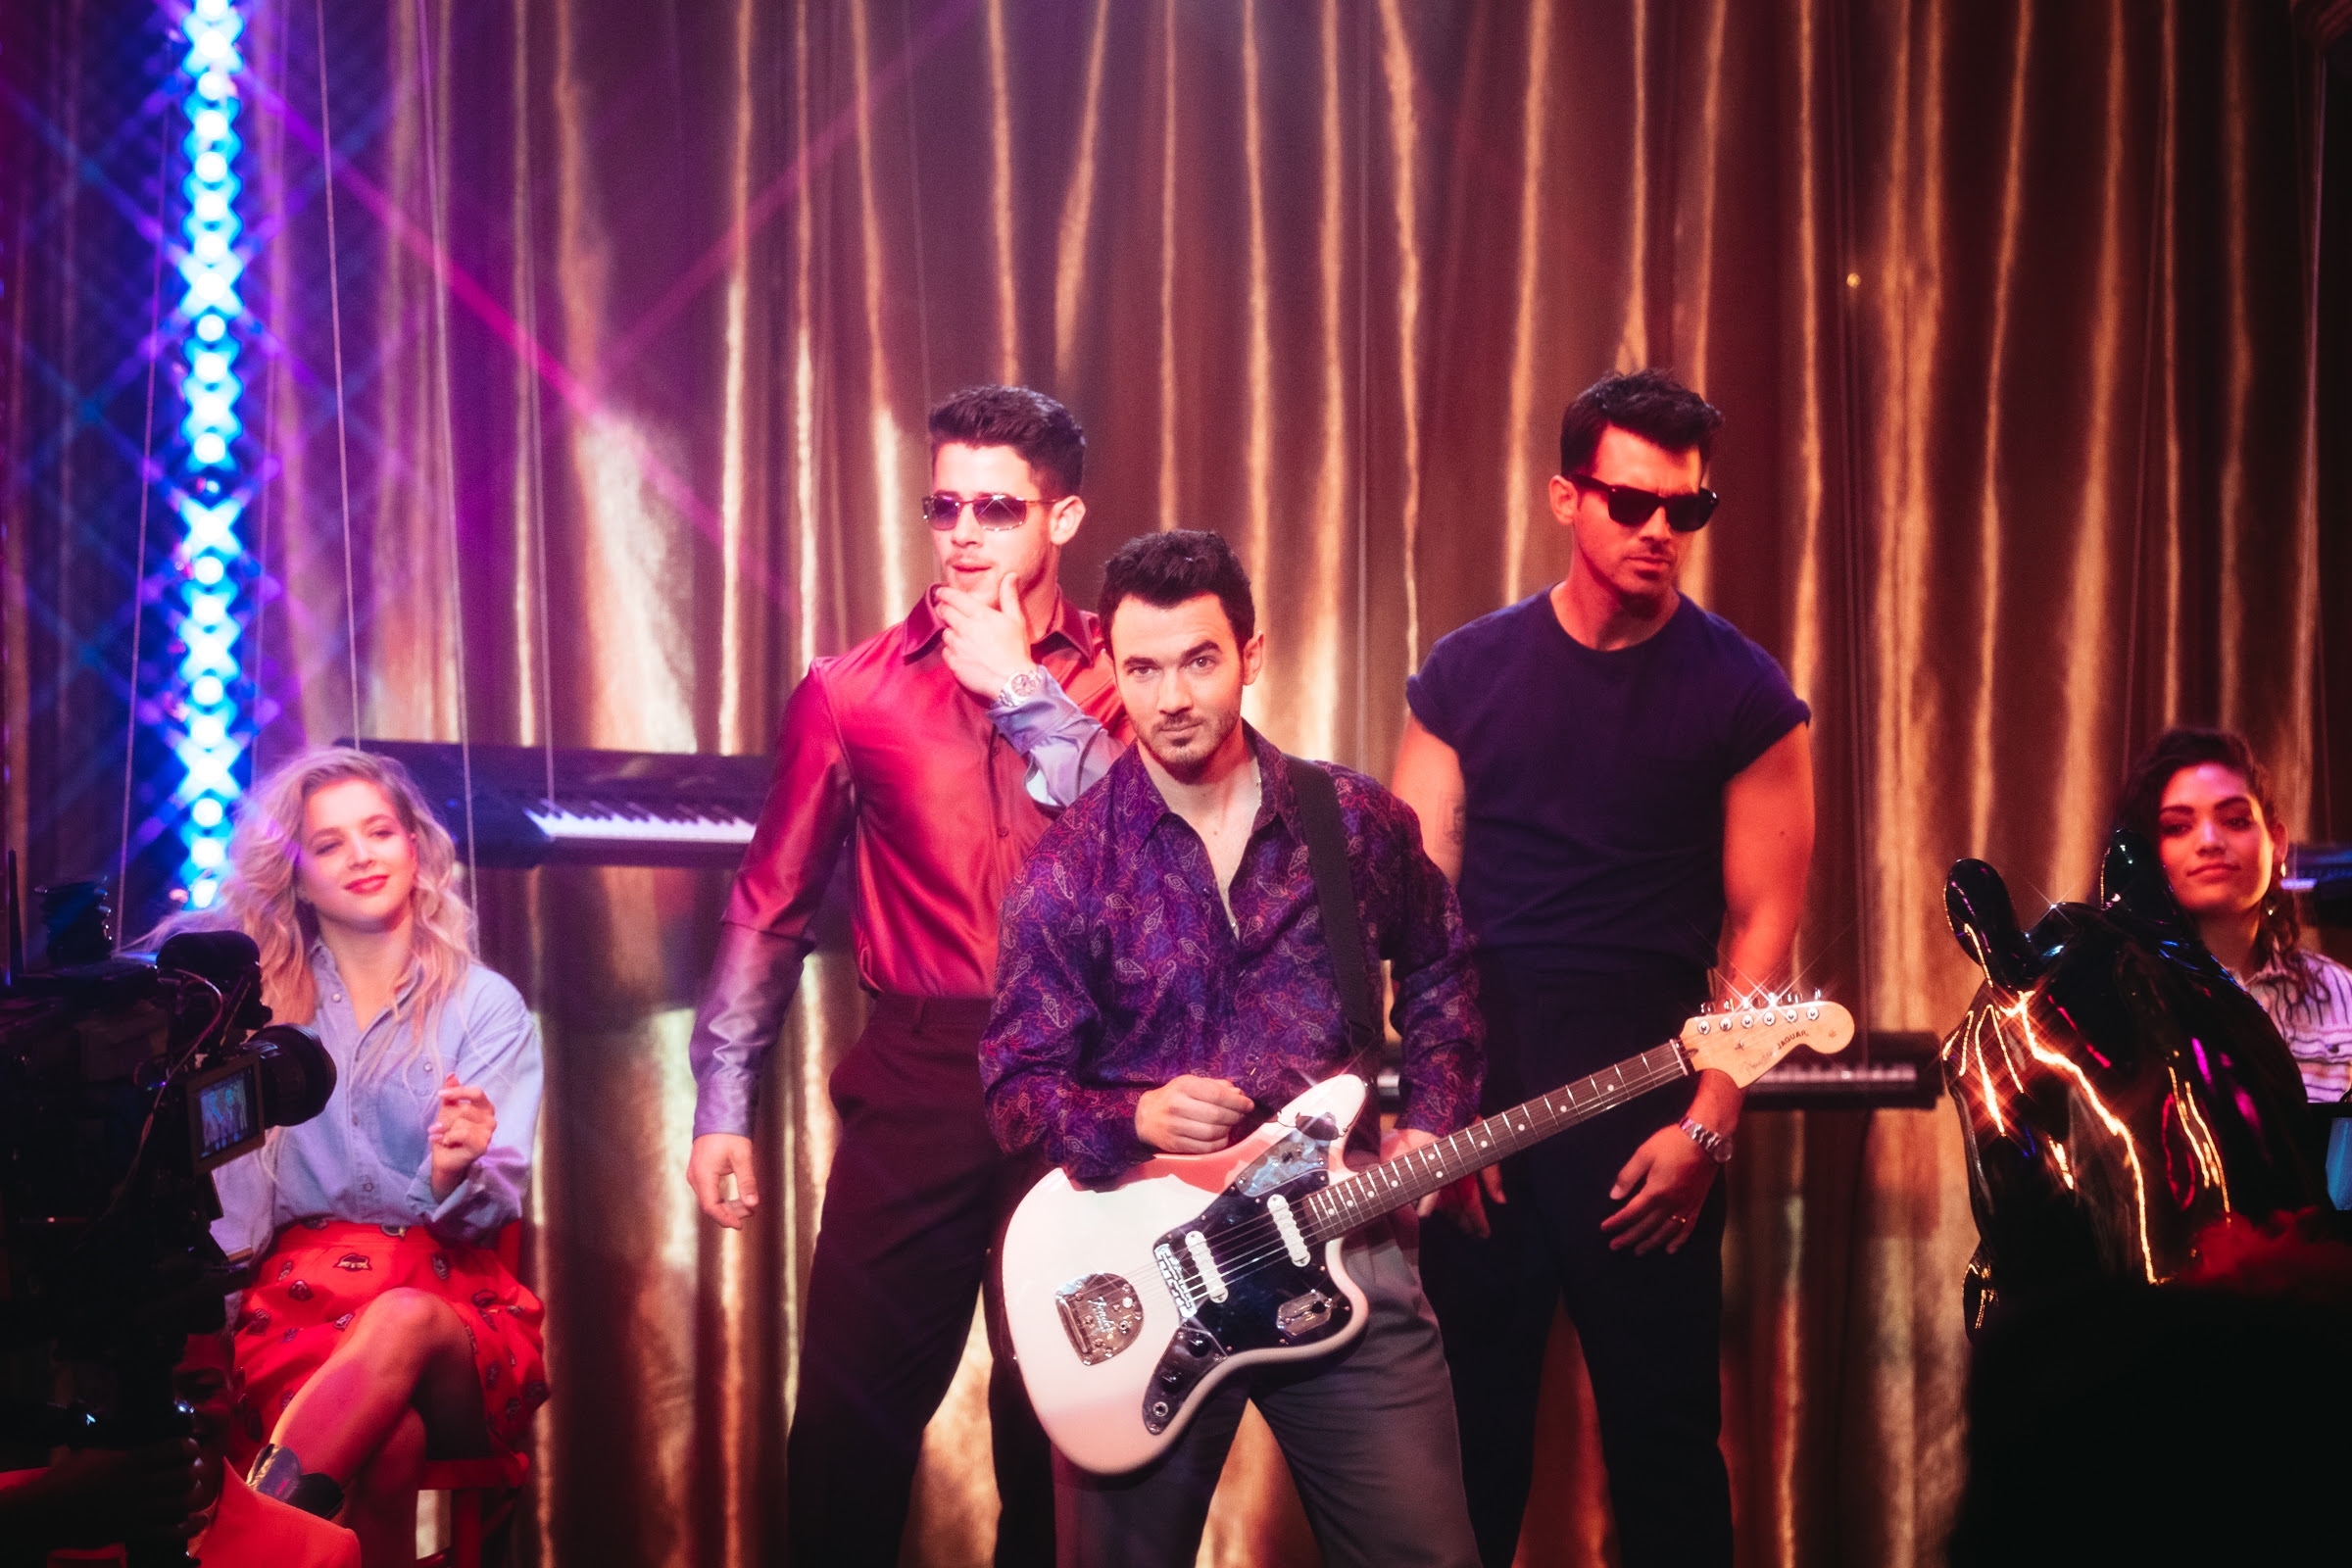 """Jonas Brothers pay tribute to the '80s in video for """"Only Human"""""""